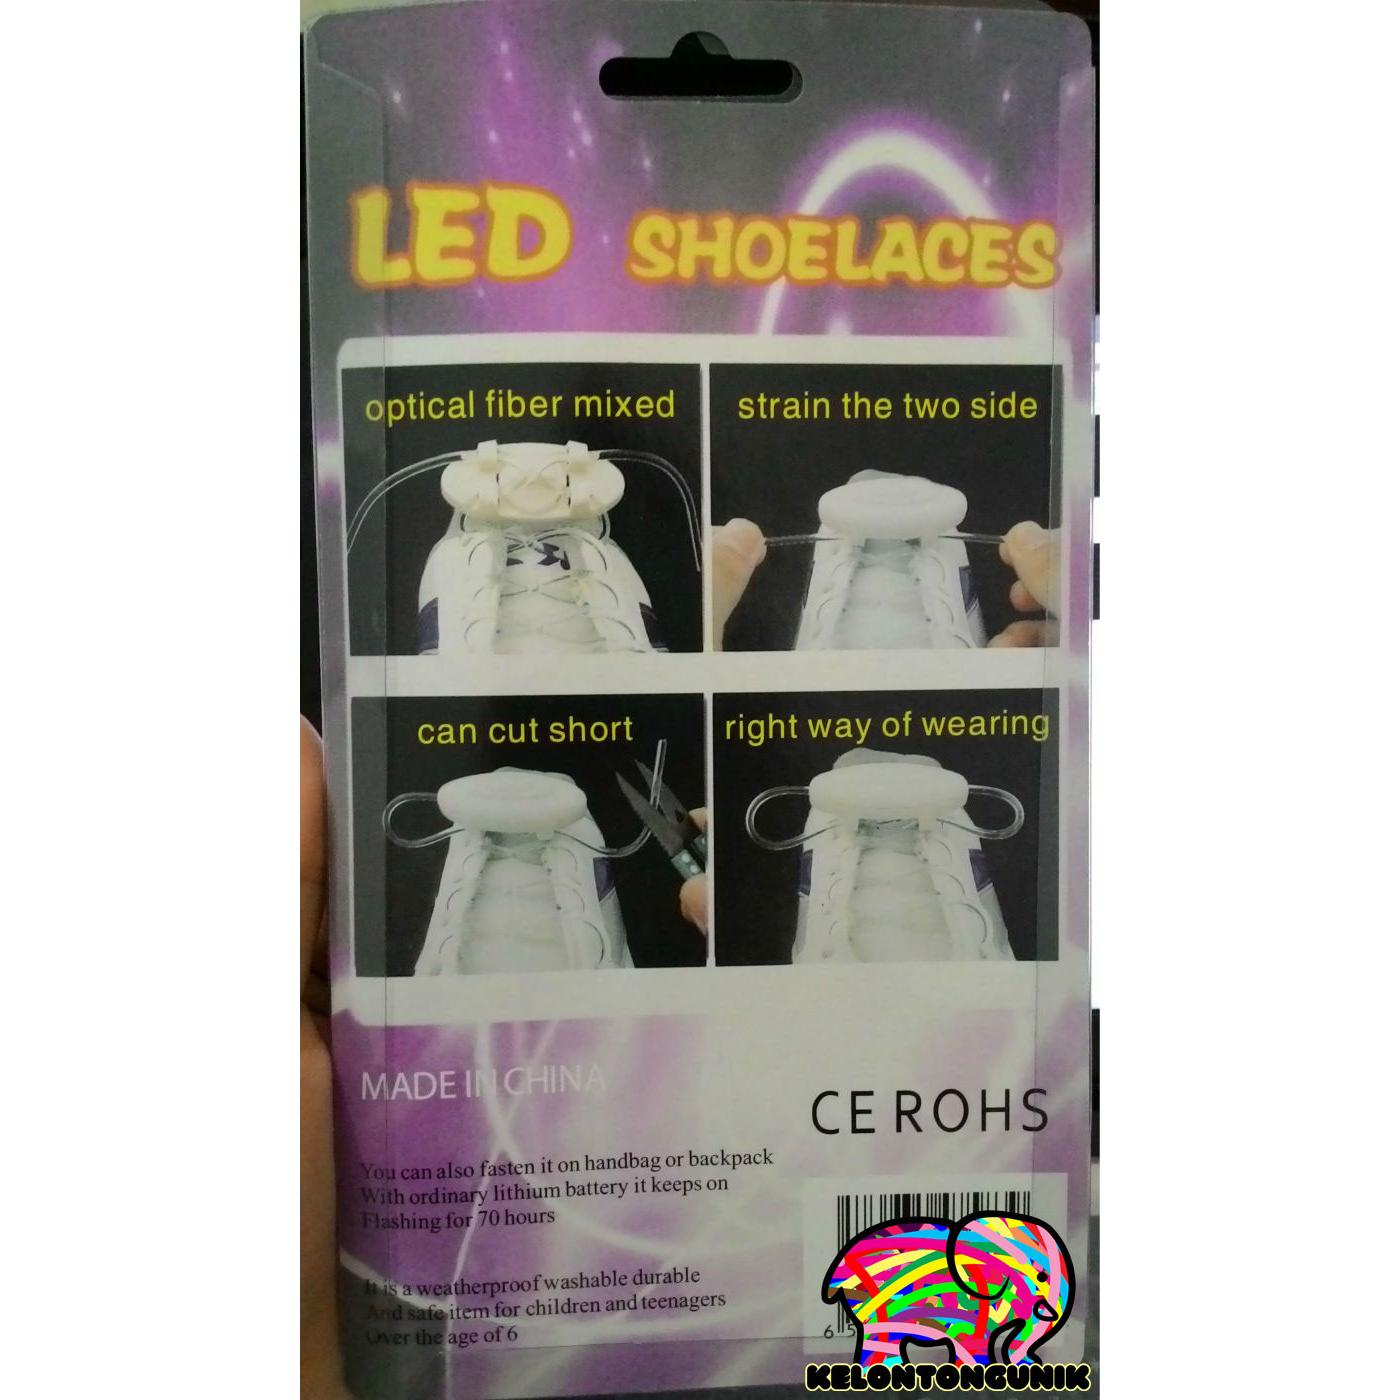 Tali Sepatu Led Mix Warna Glow In The Dark Elevenia 50 Pcs 5mm Nyala Hijau Kedip Blink